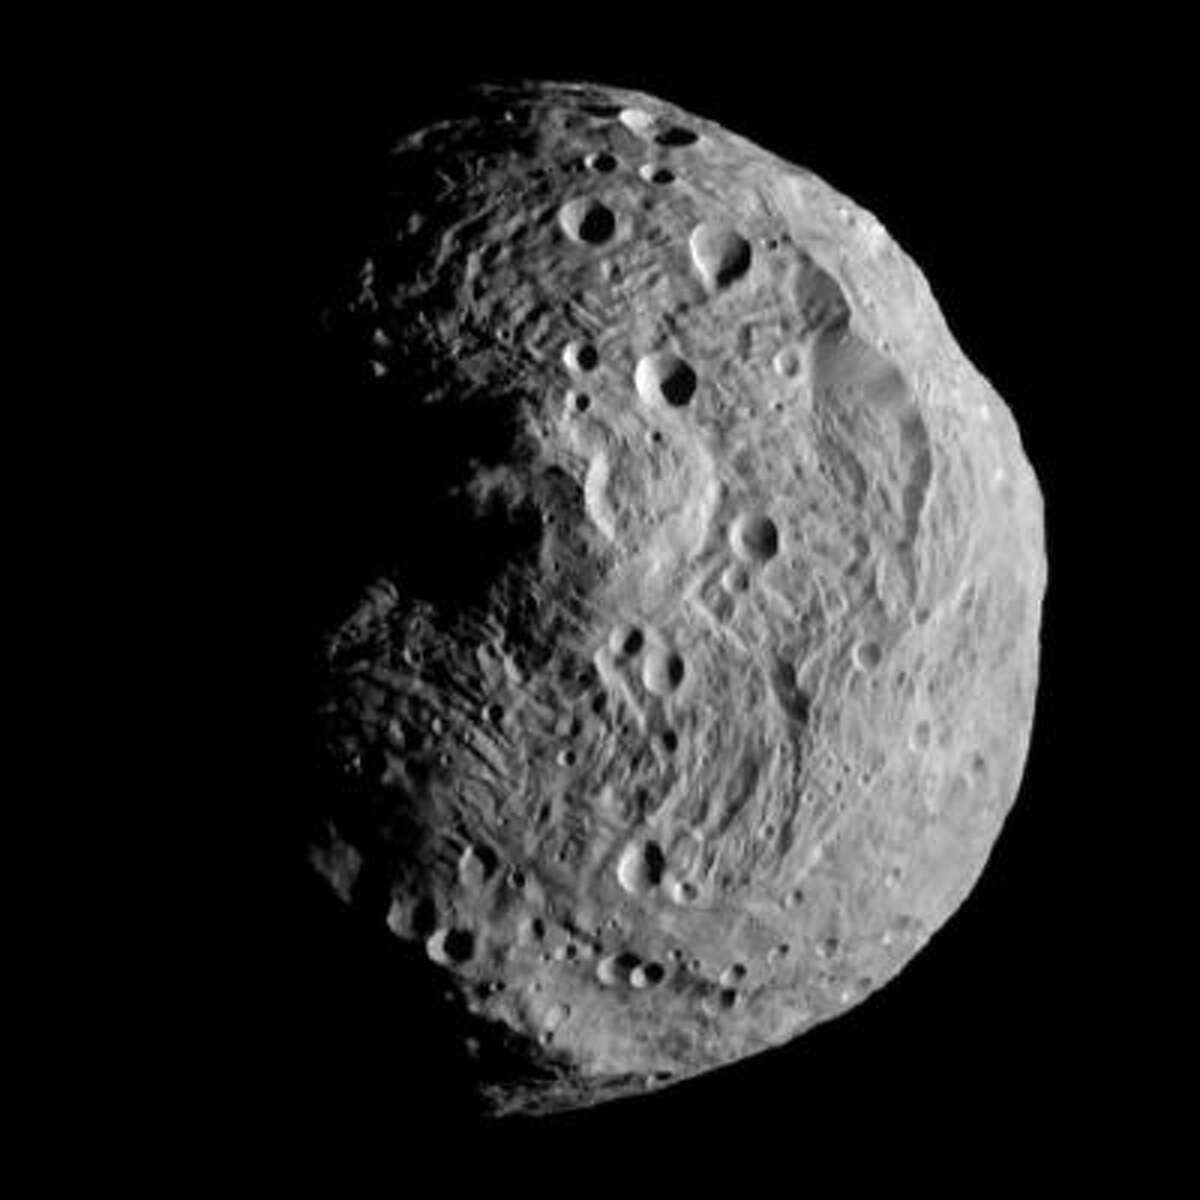 This file image released by the Jet Propulsion Laboratory on Monday, July 18, 2011 shows an asteroid photographed by the Dawn spacecraft on July 17, 2011.